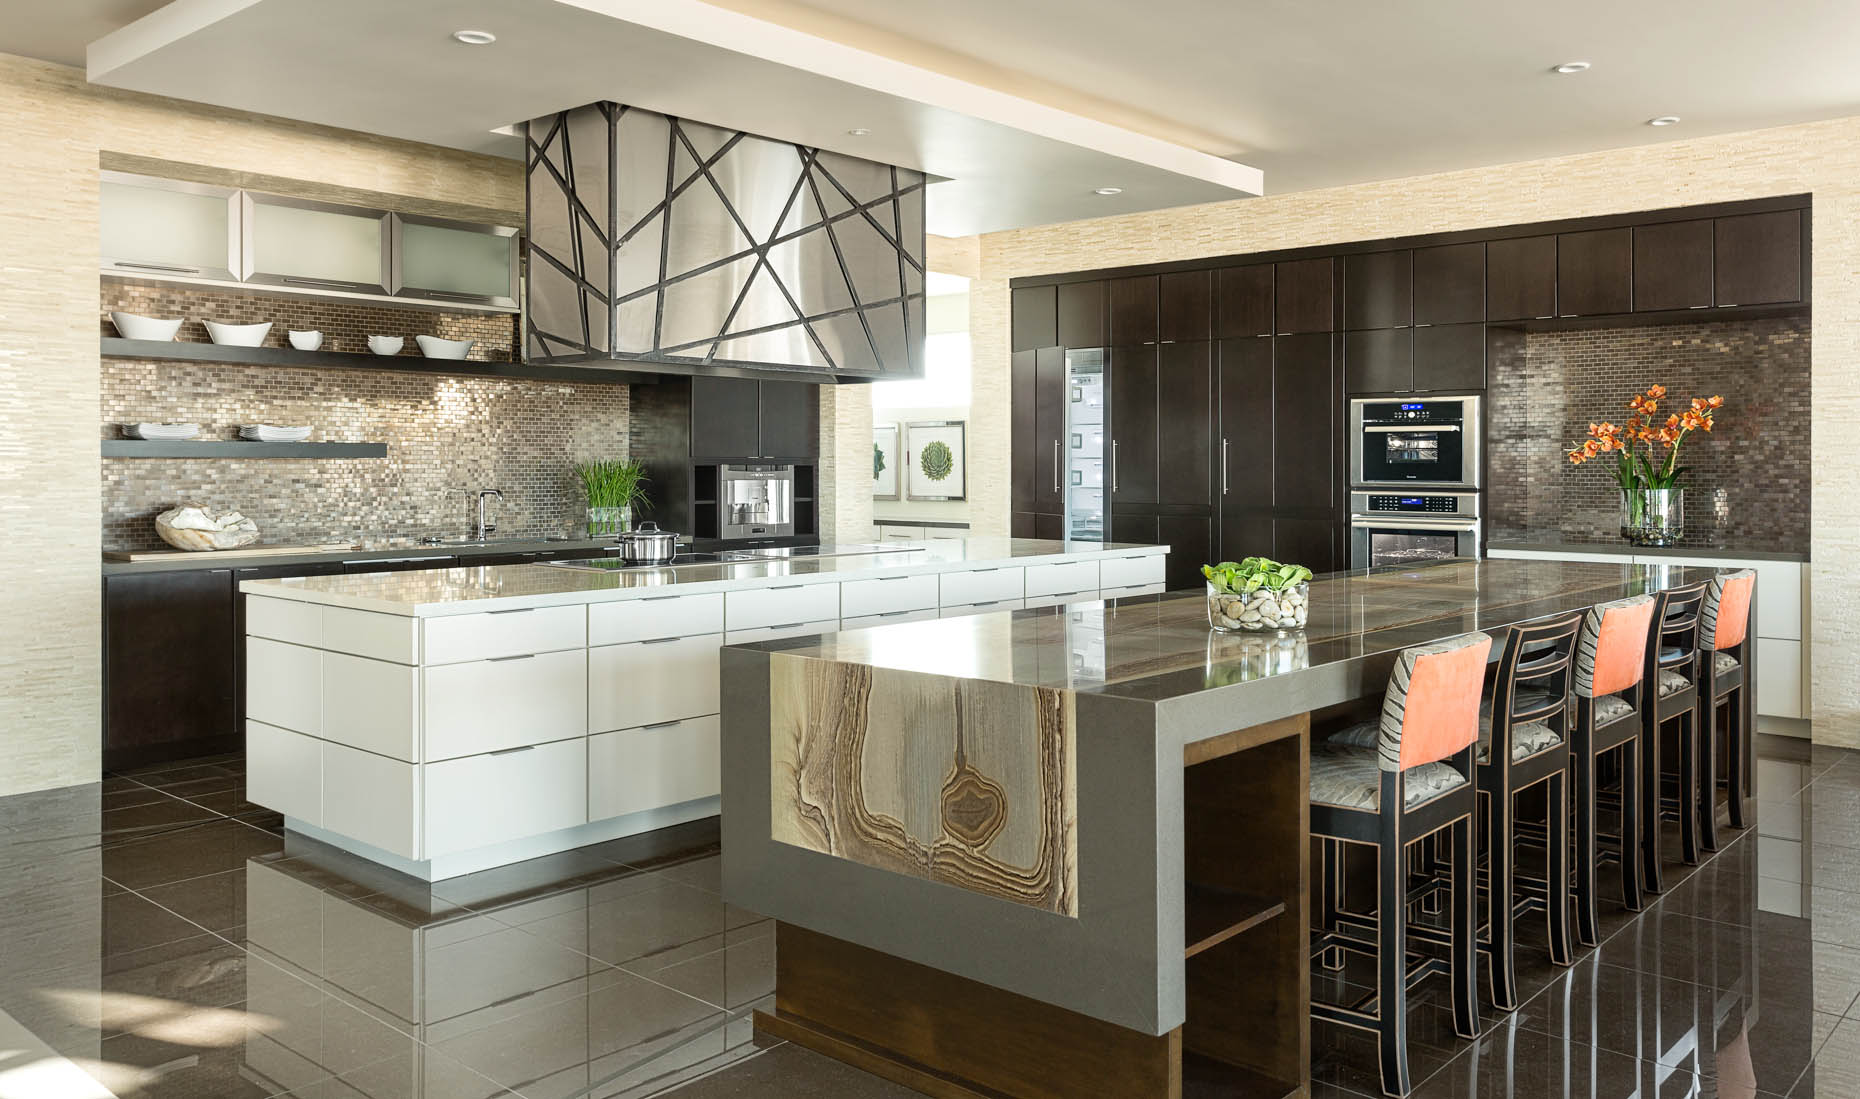 Thermador Home Appliance Blog | Thermador Was a Shining Star at ...